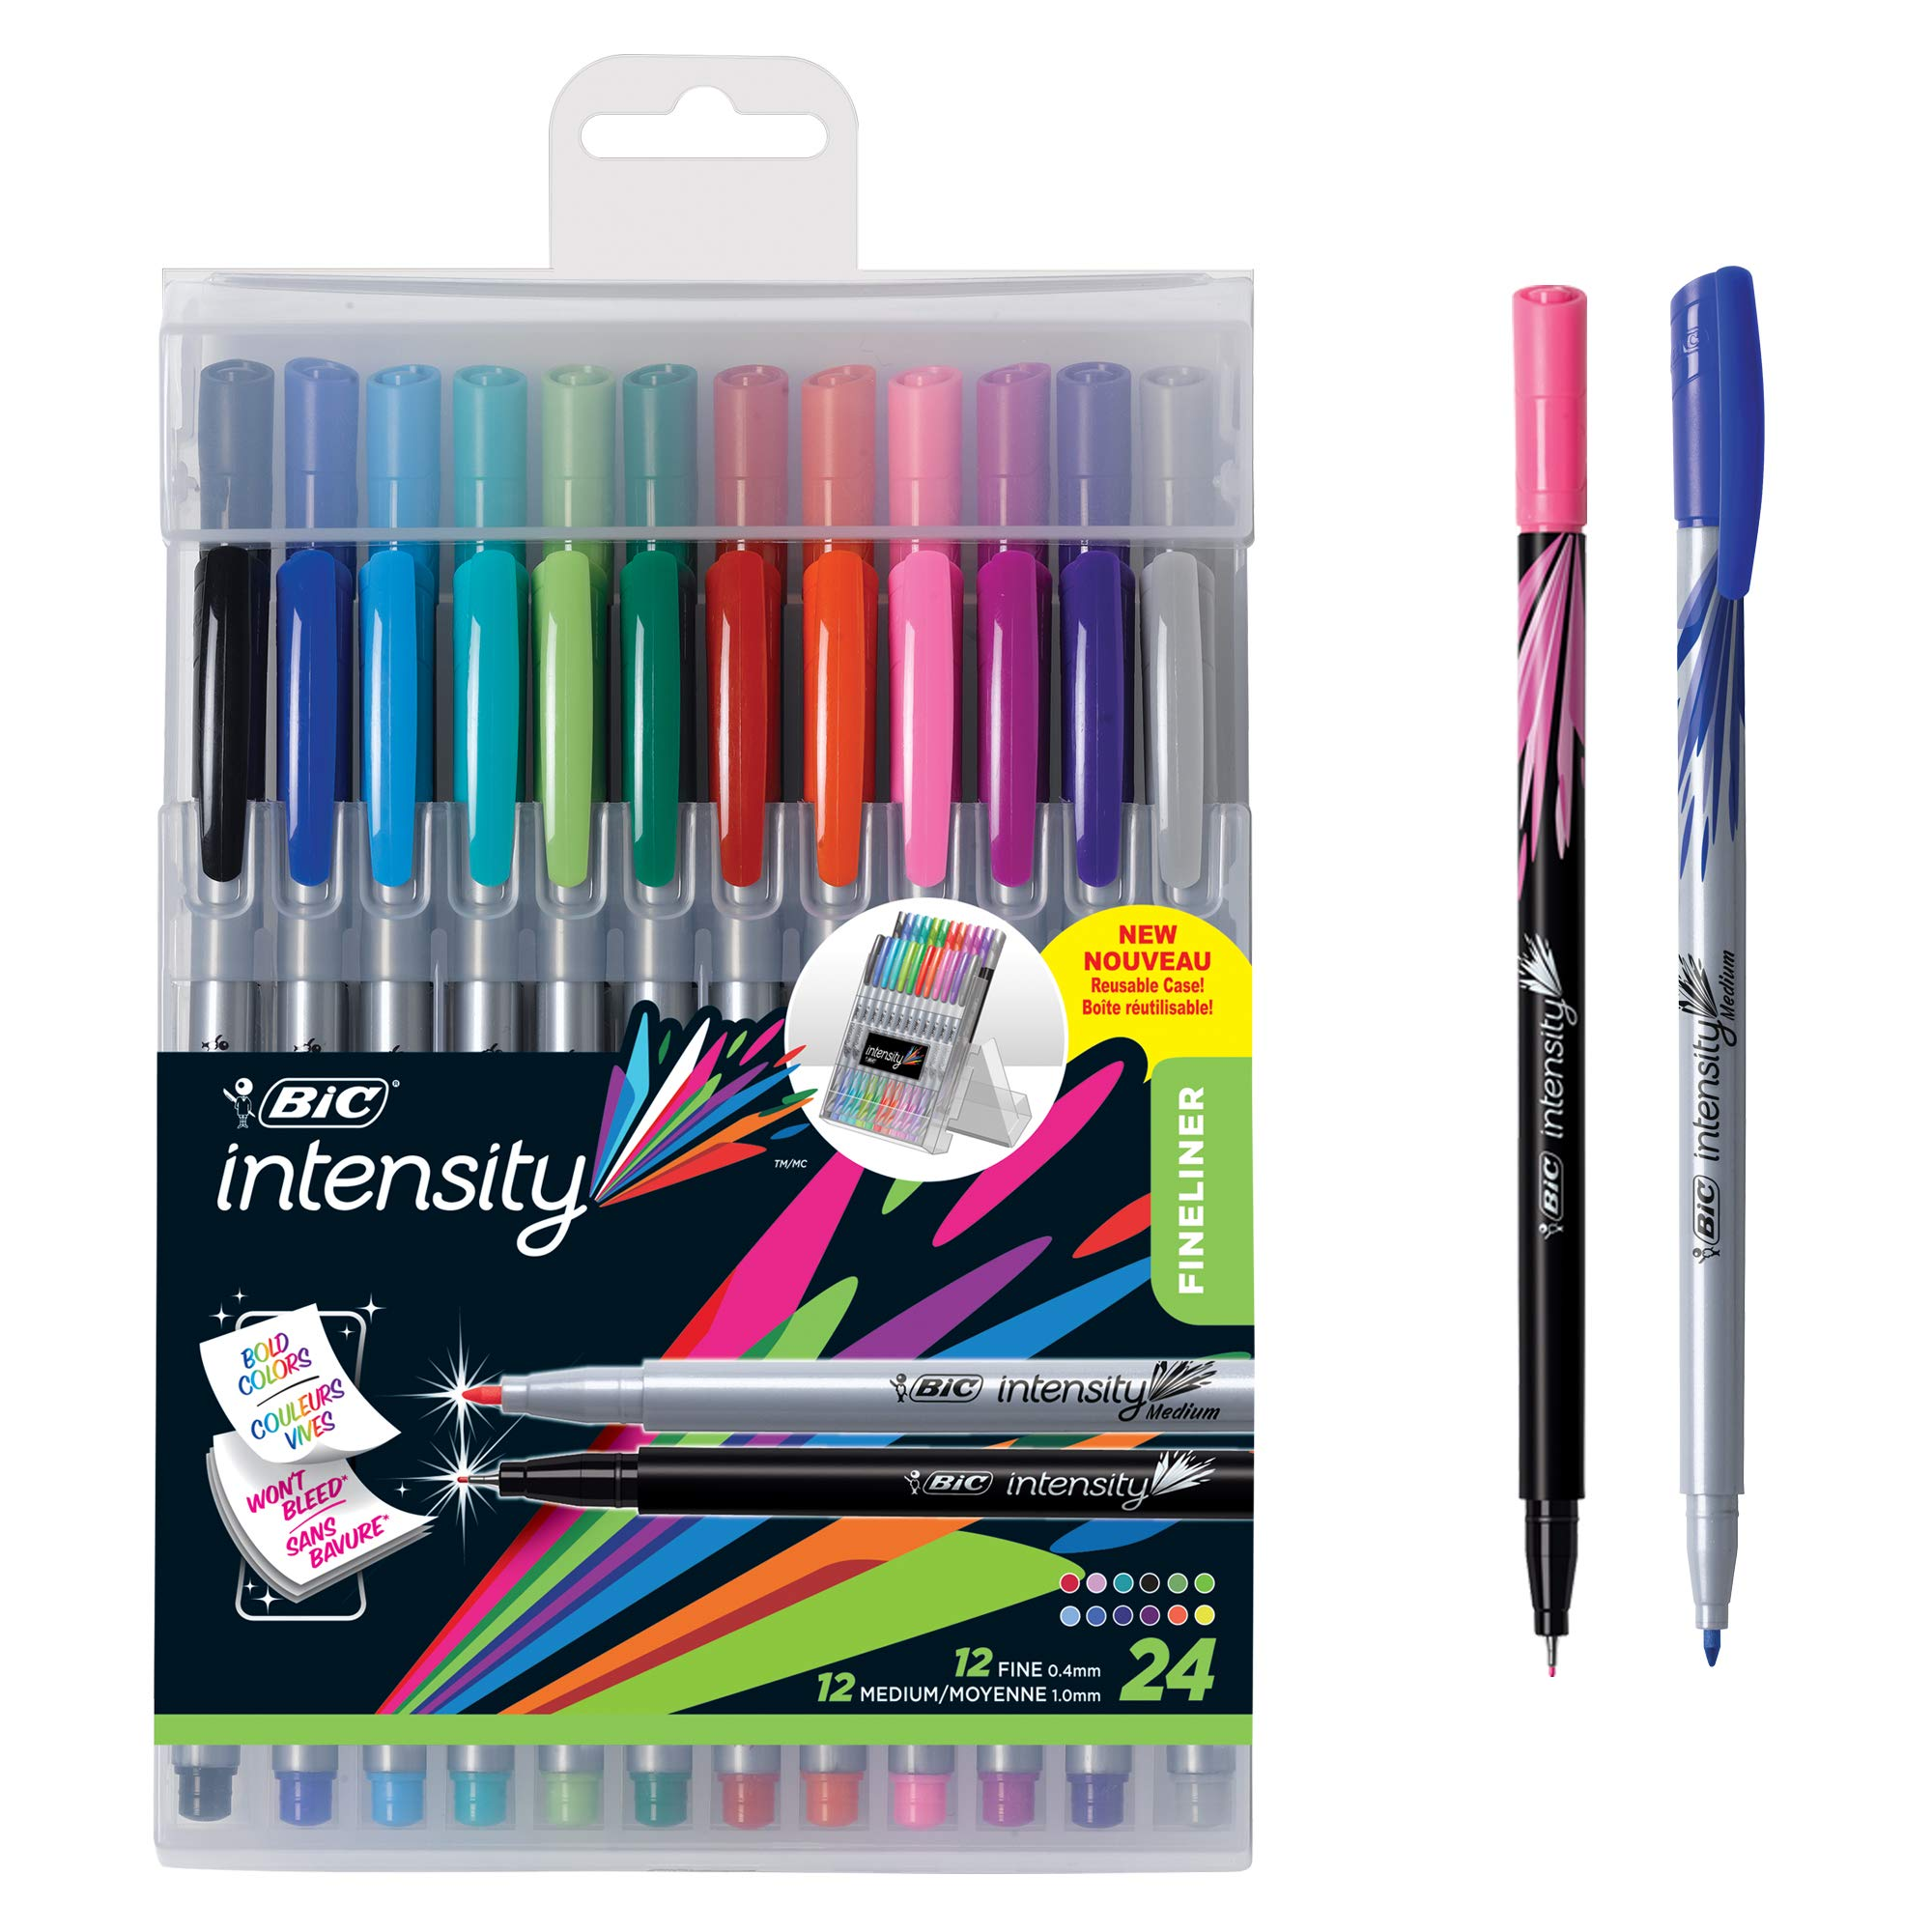 BIC Intensity Fineliner Marker Pen Easel Pack, Fine/Medium Point, Assorted Colors, 24-Count by BIC (Image #1)